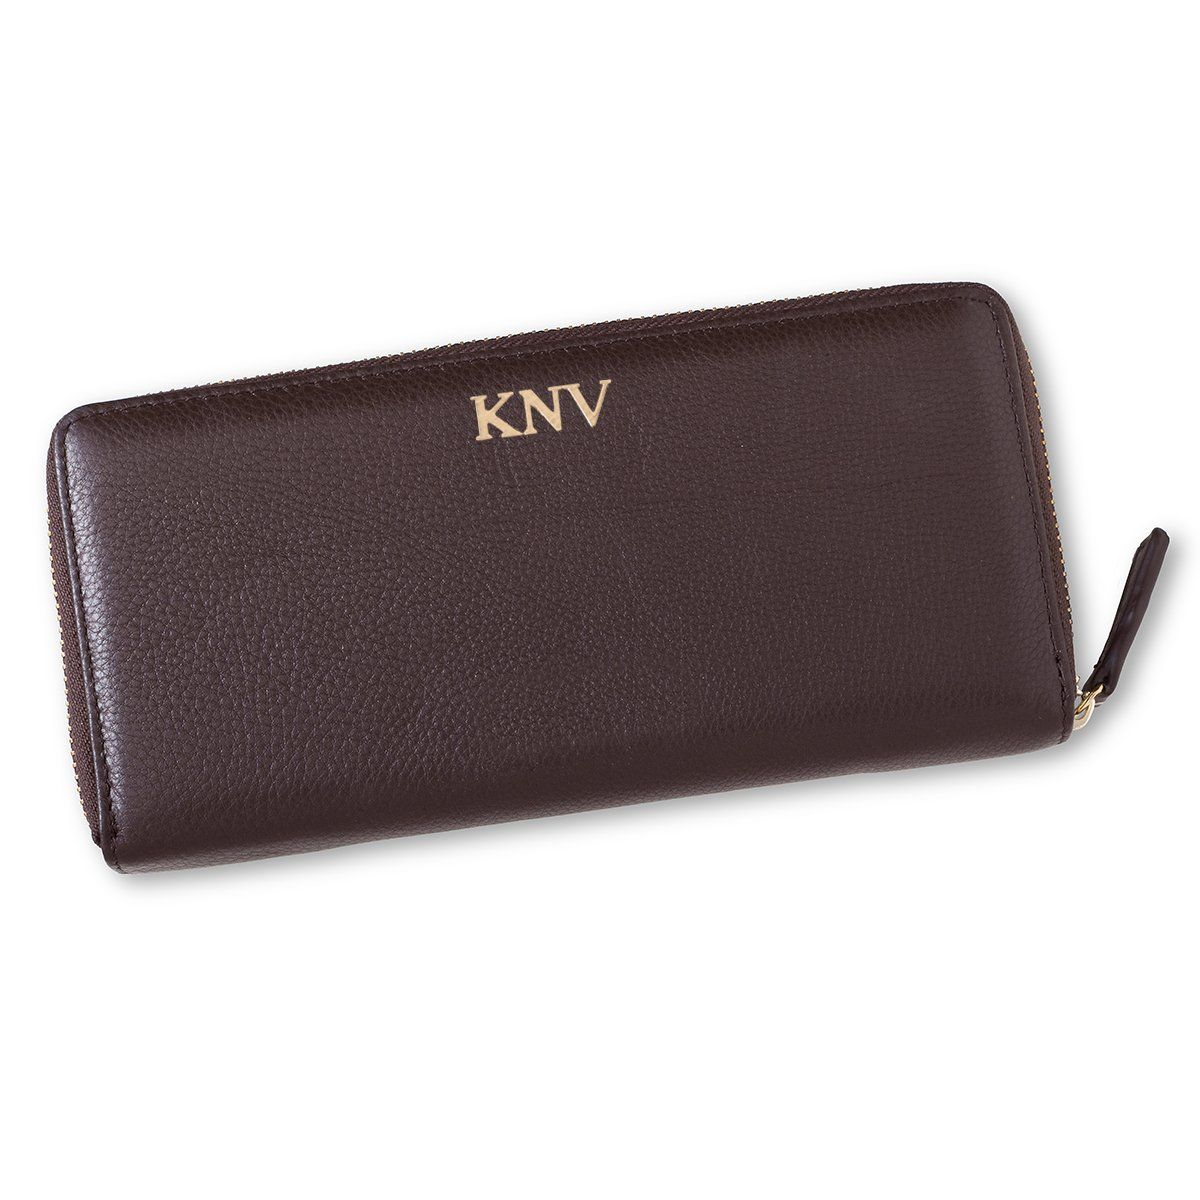 Personalized Women's Brown Borello Leather Zip Wallet